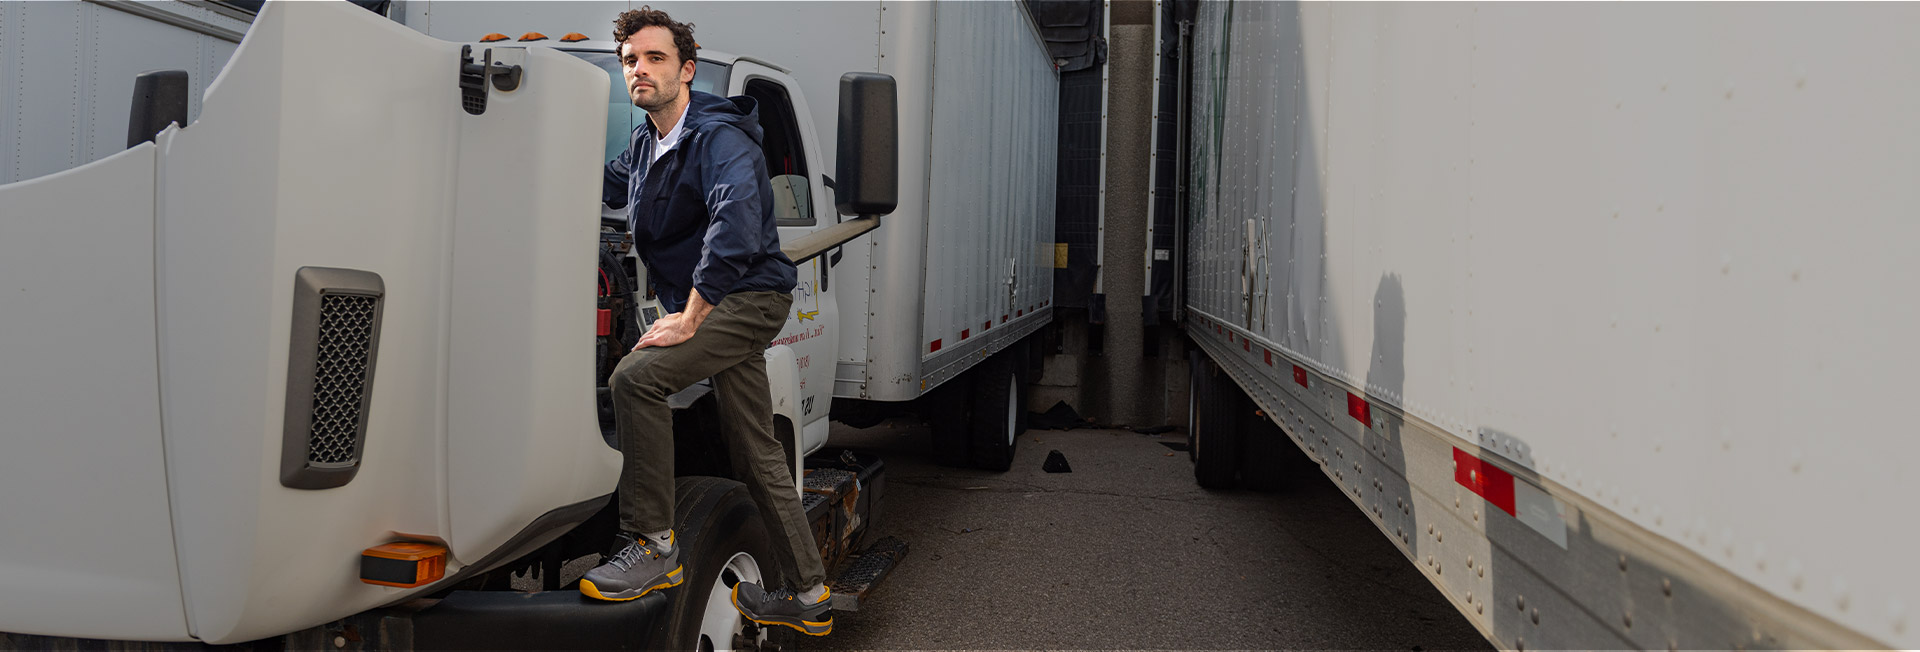 A man stading next to a semi truck.